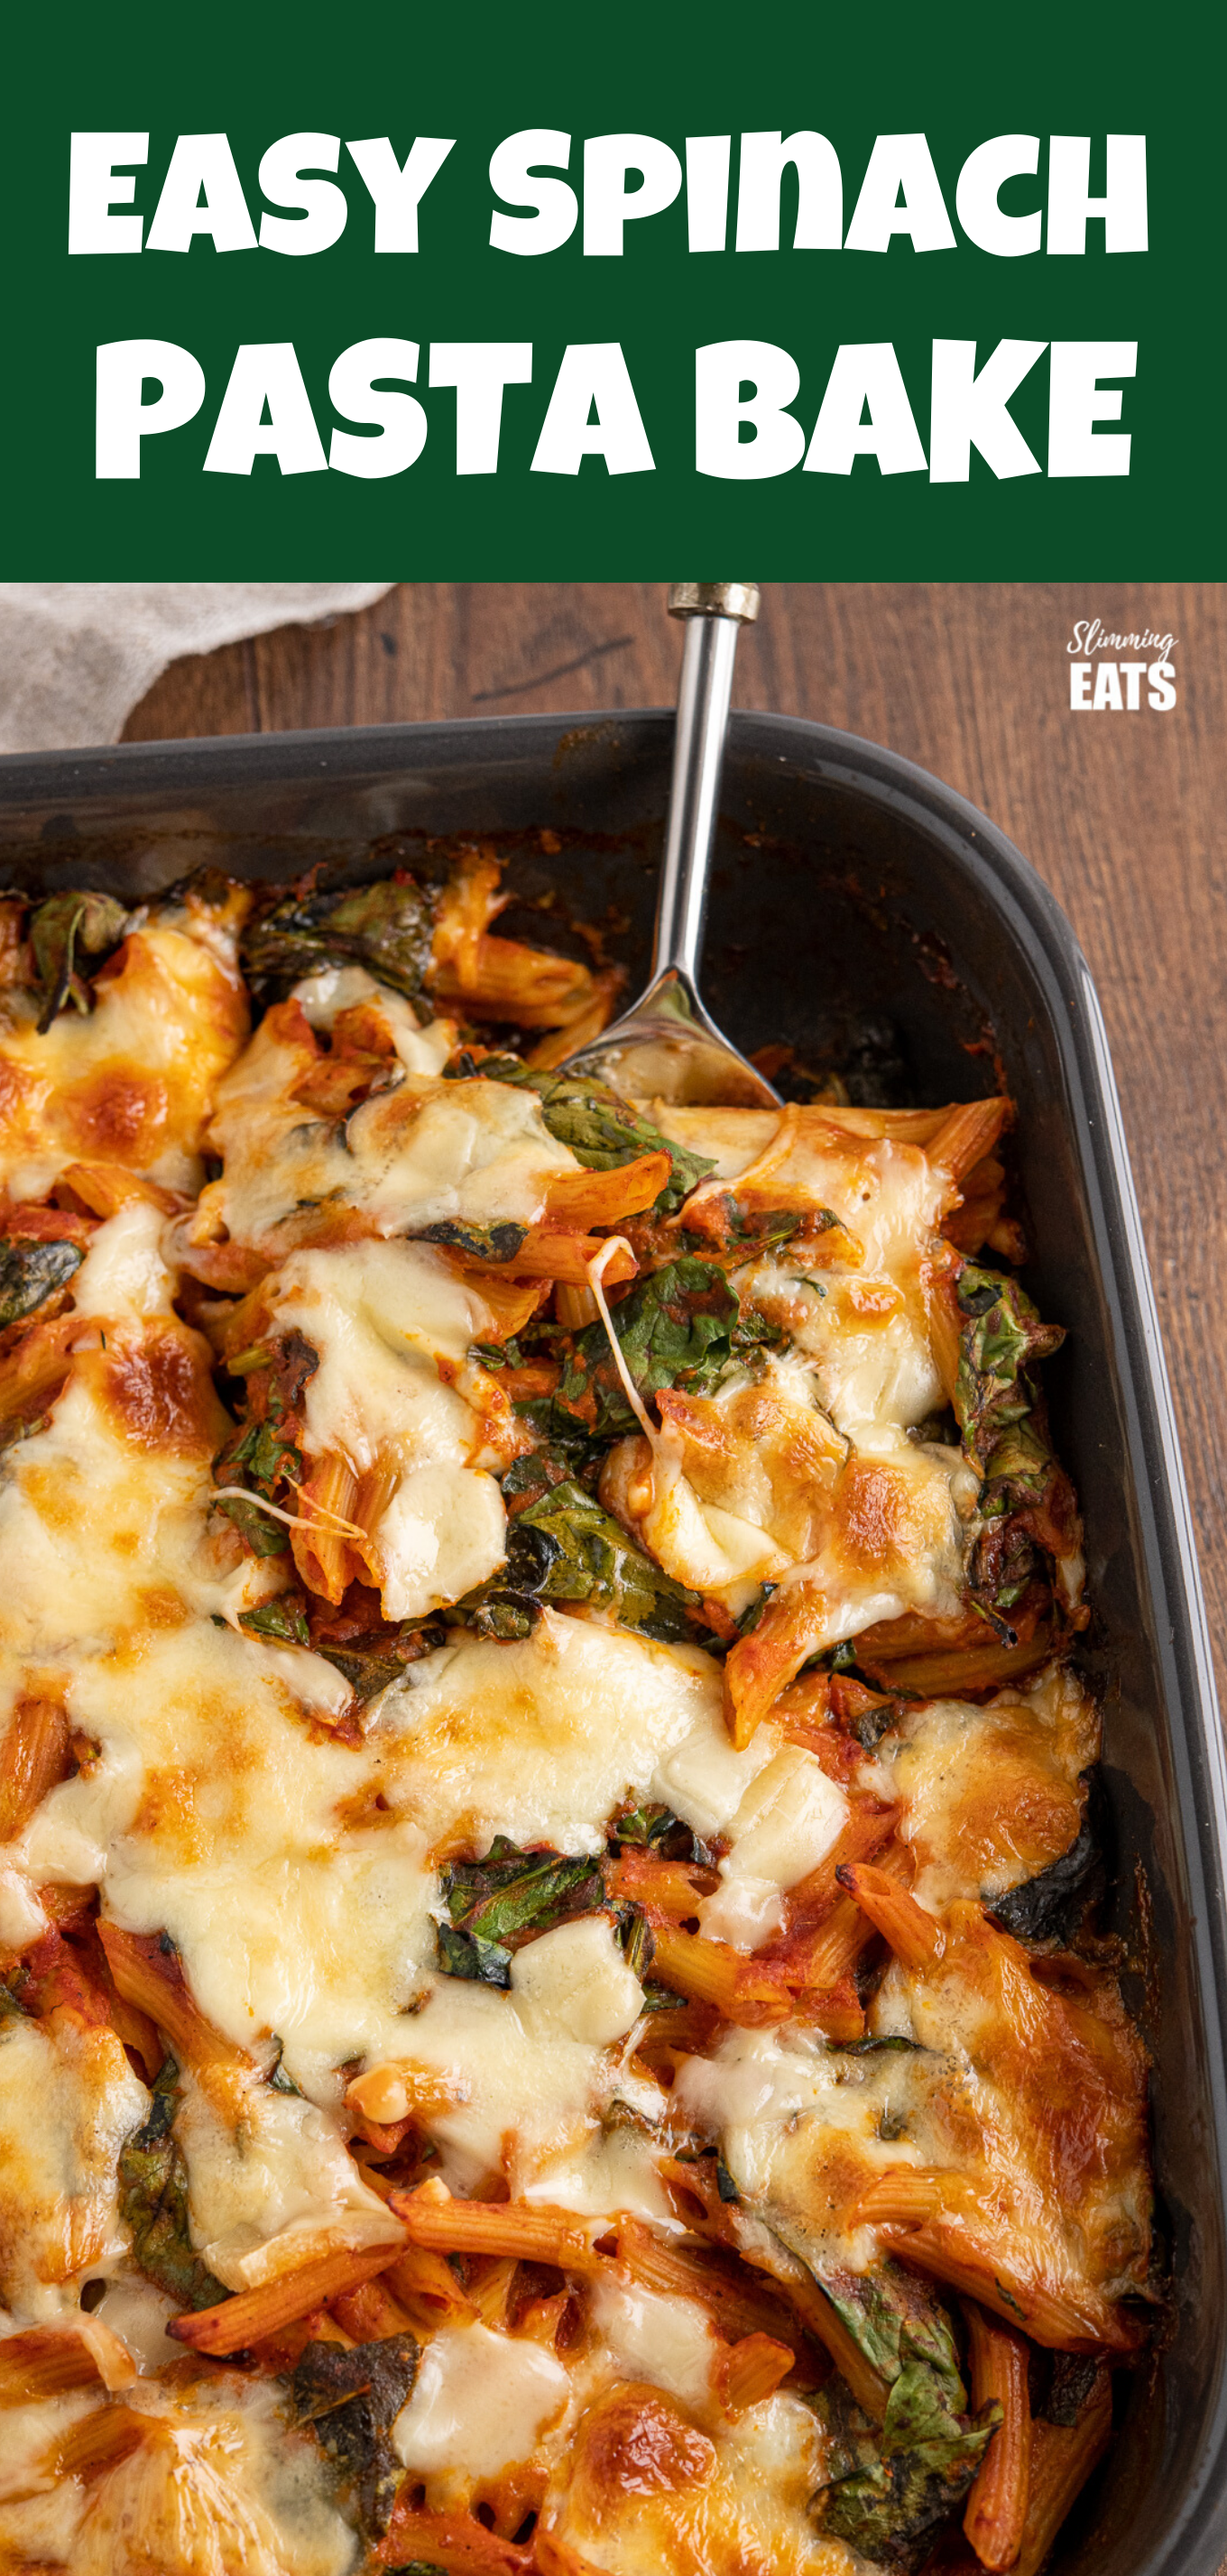 EASY SPINACH PASTA BAKE FEATURED PIN IMAGE